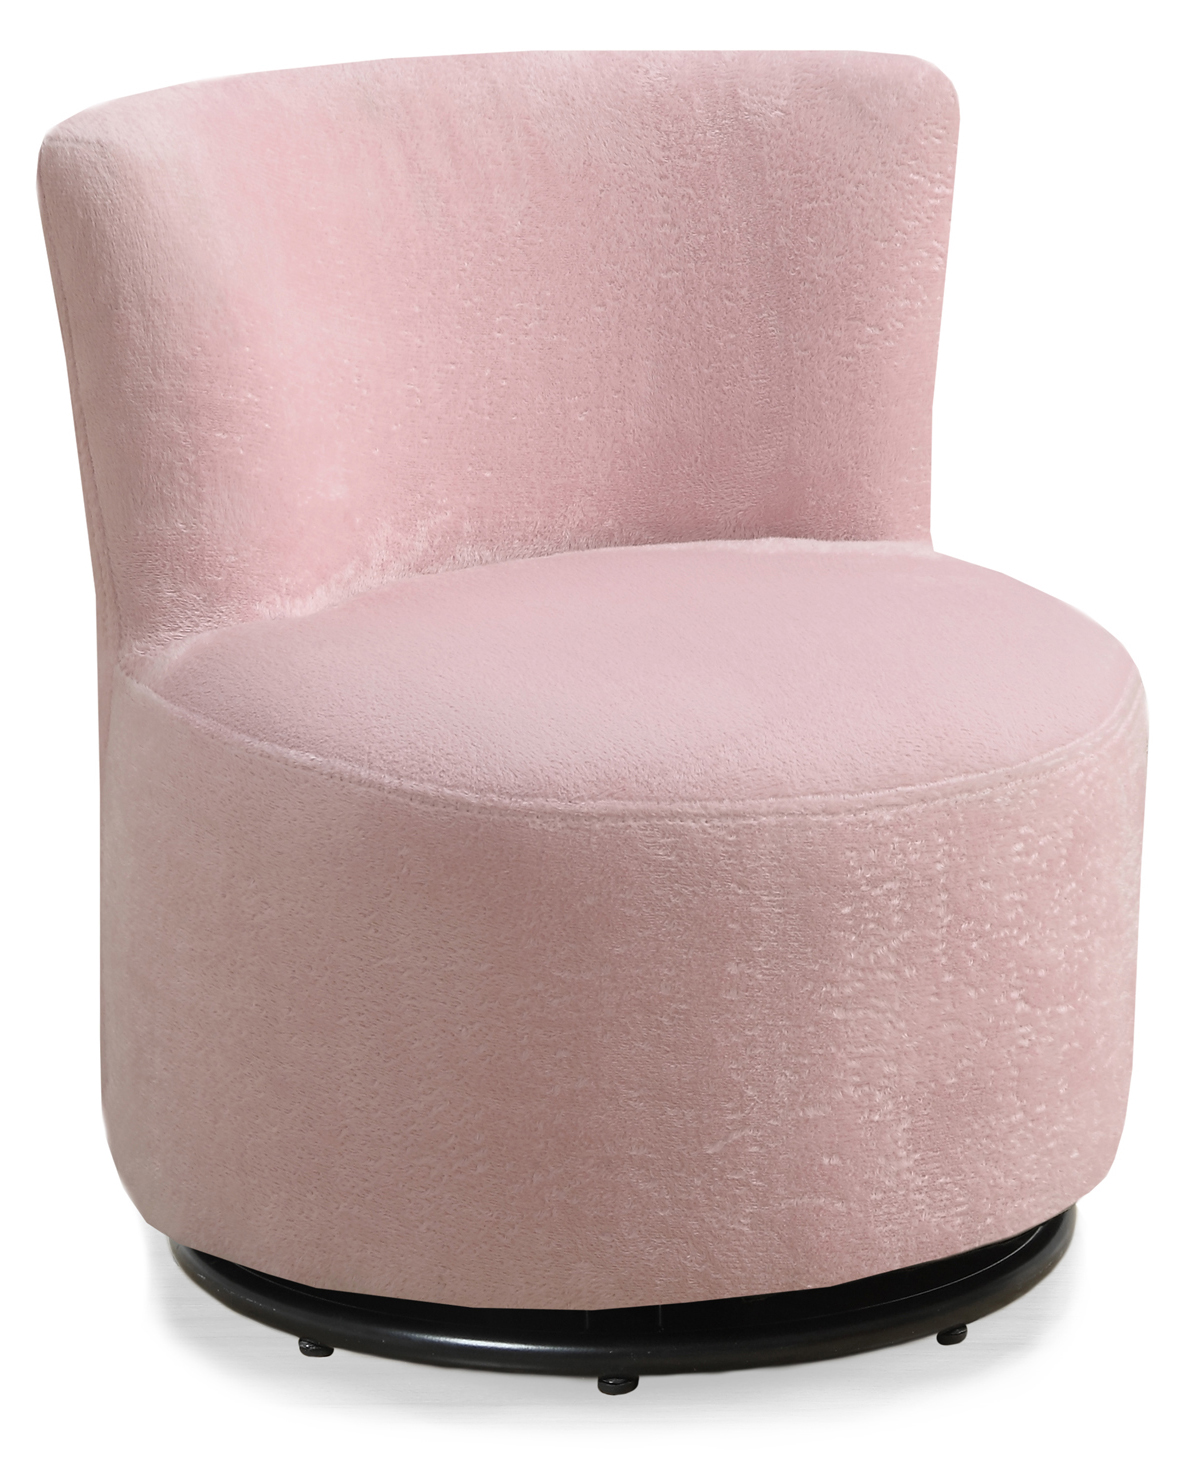 Juvenile Chair - Swivel / Fuzzy Pink Fabric